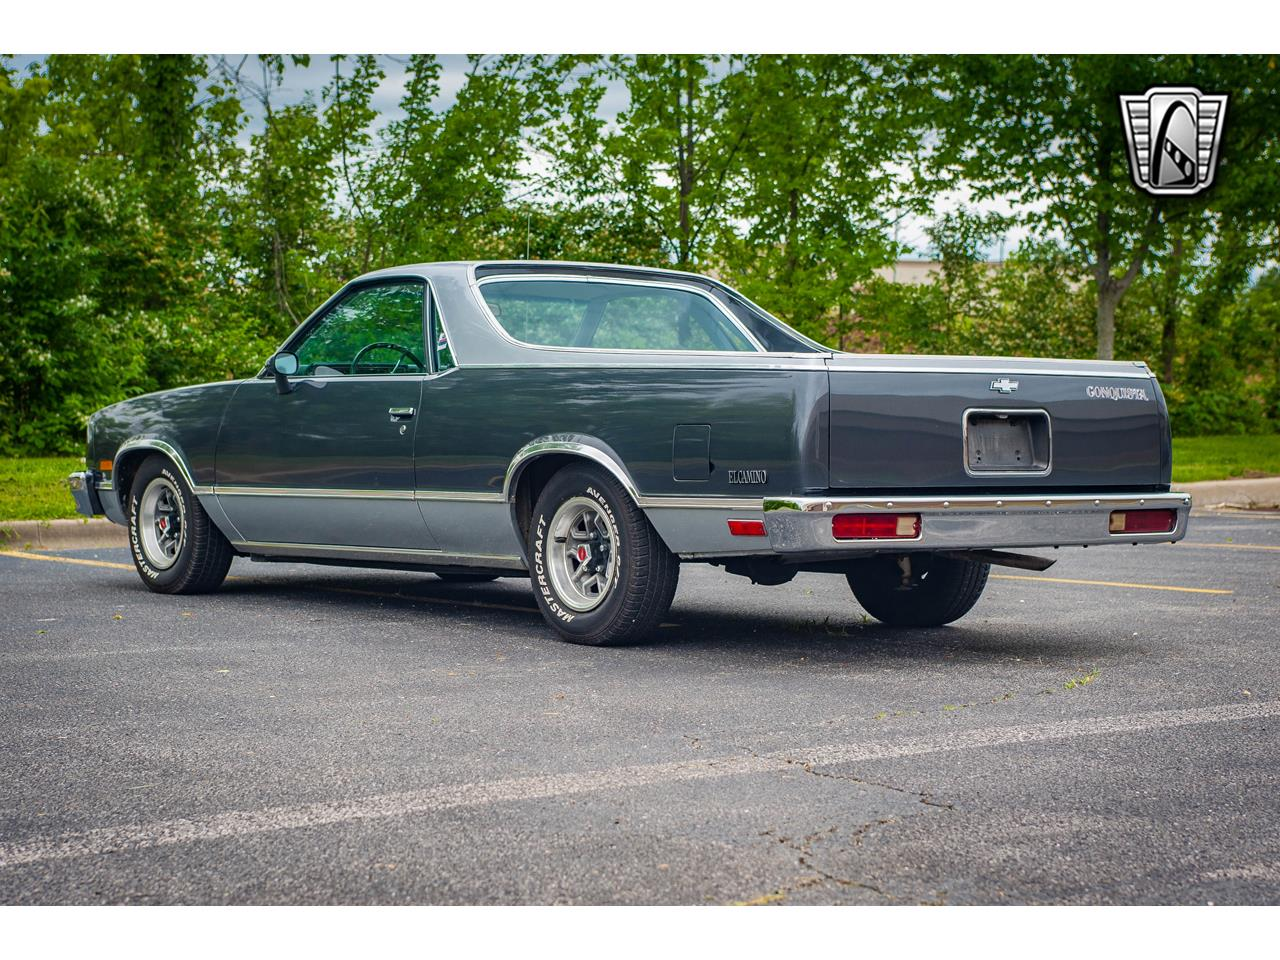 Large Picture of '82 Chevrolet El Camino located in Illinois - $13,000.00 - QB9A